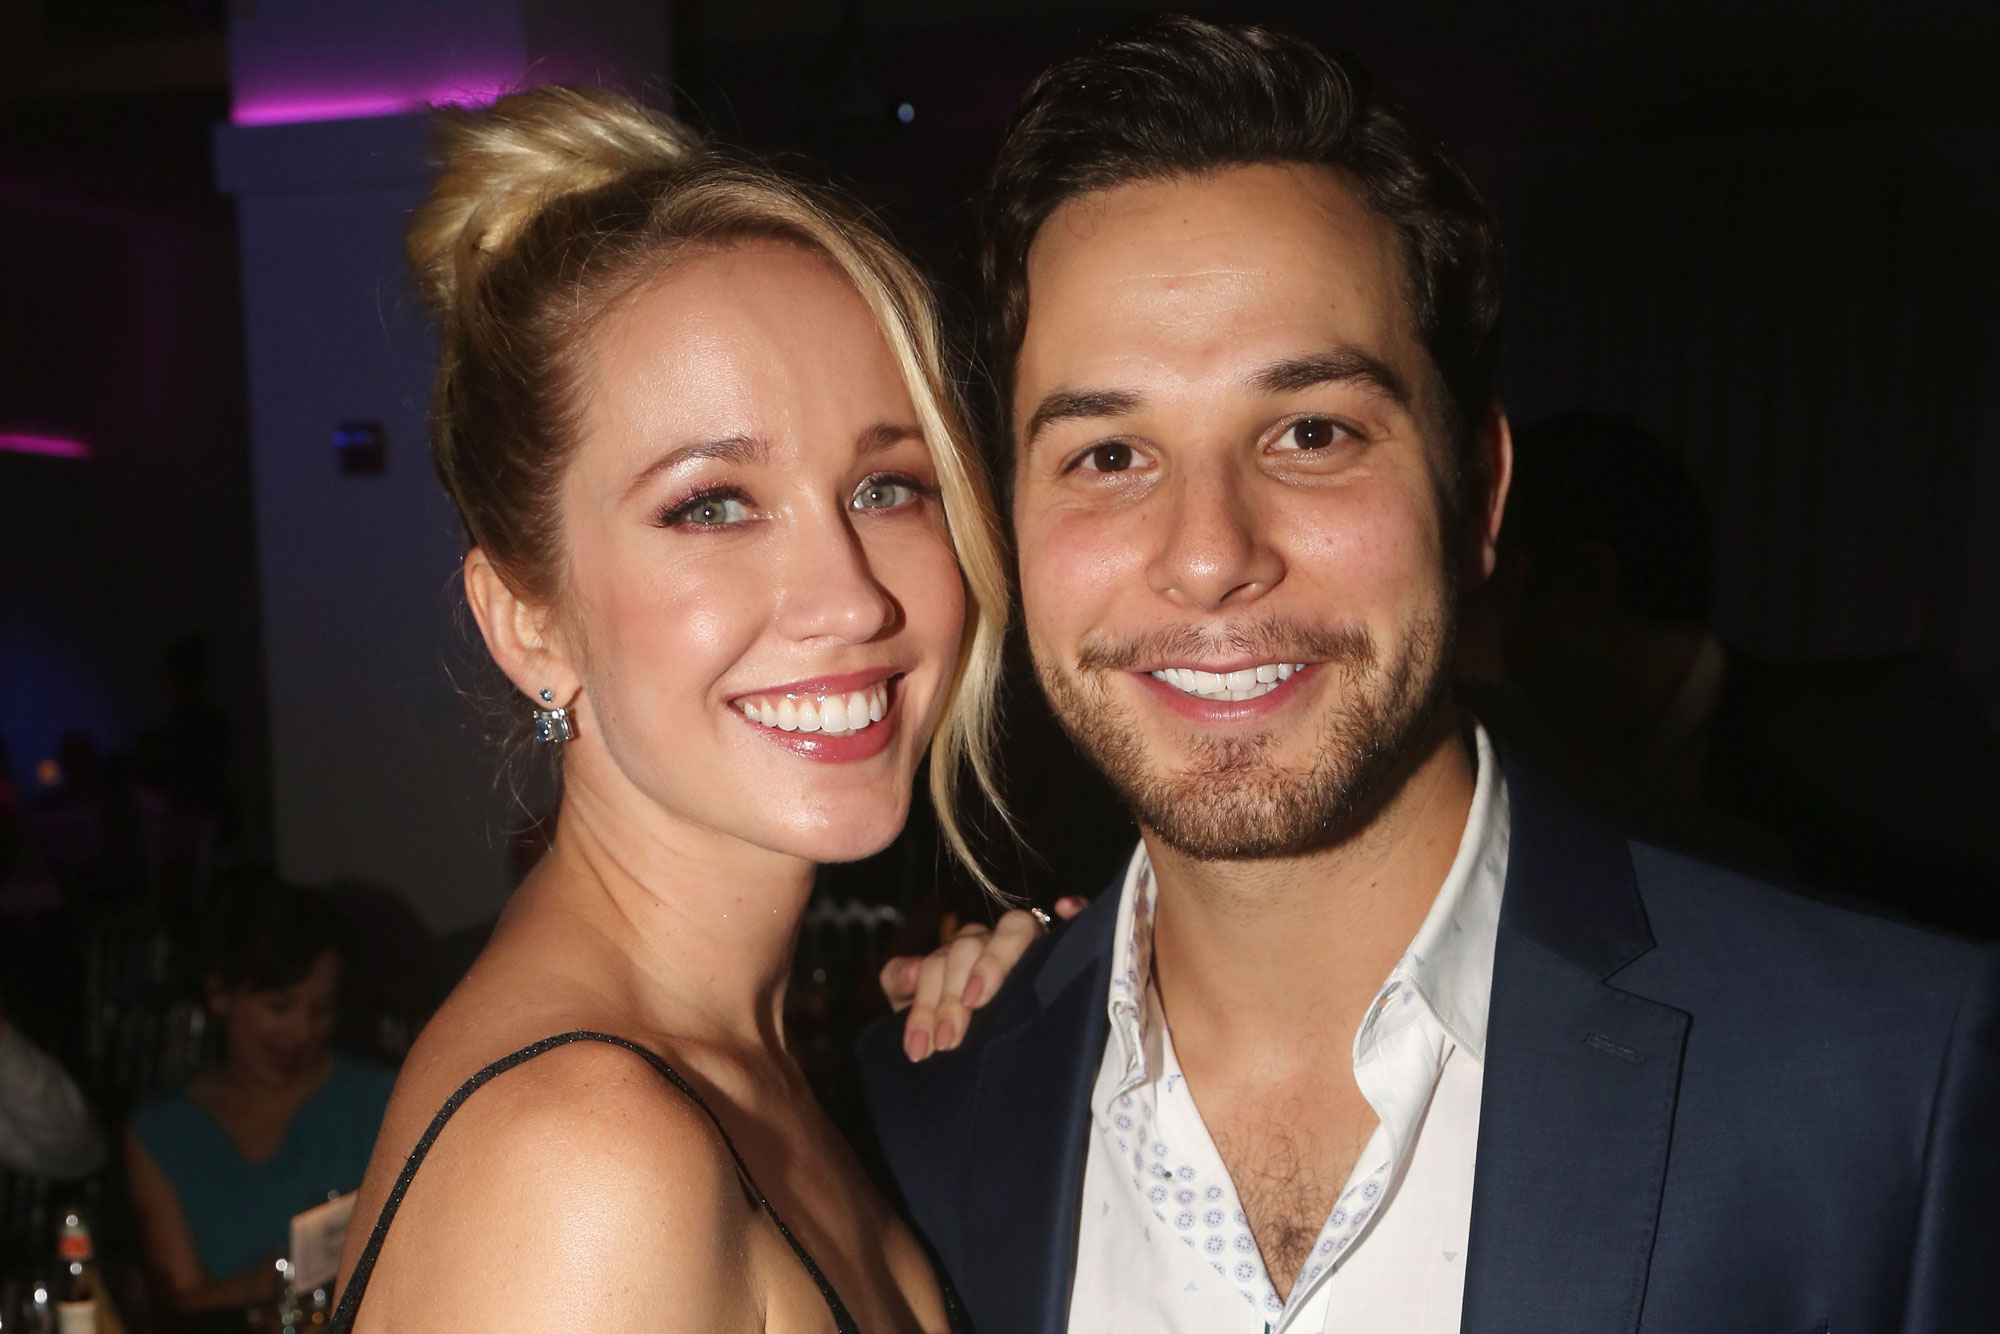 Anna Camp officially files for divorce from Skylar Astin